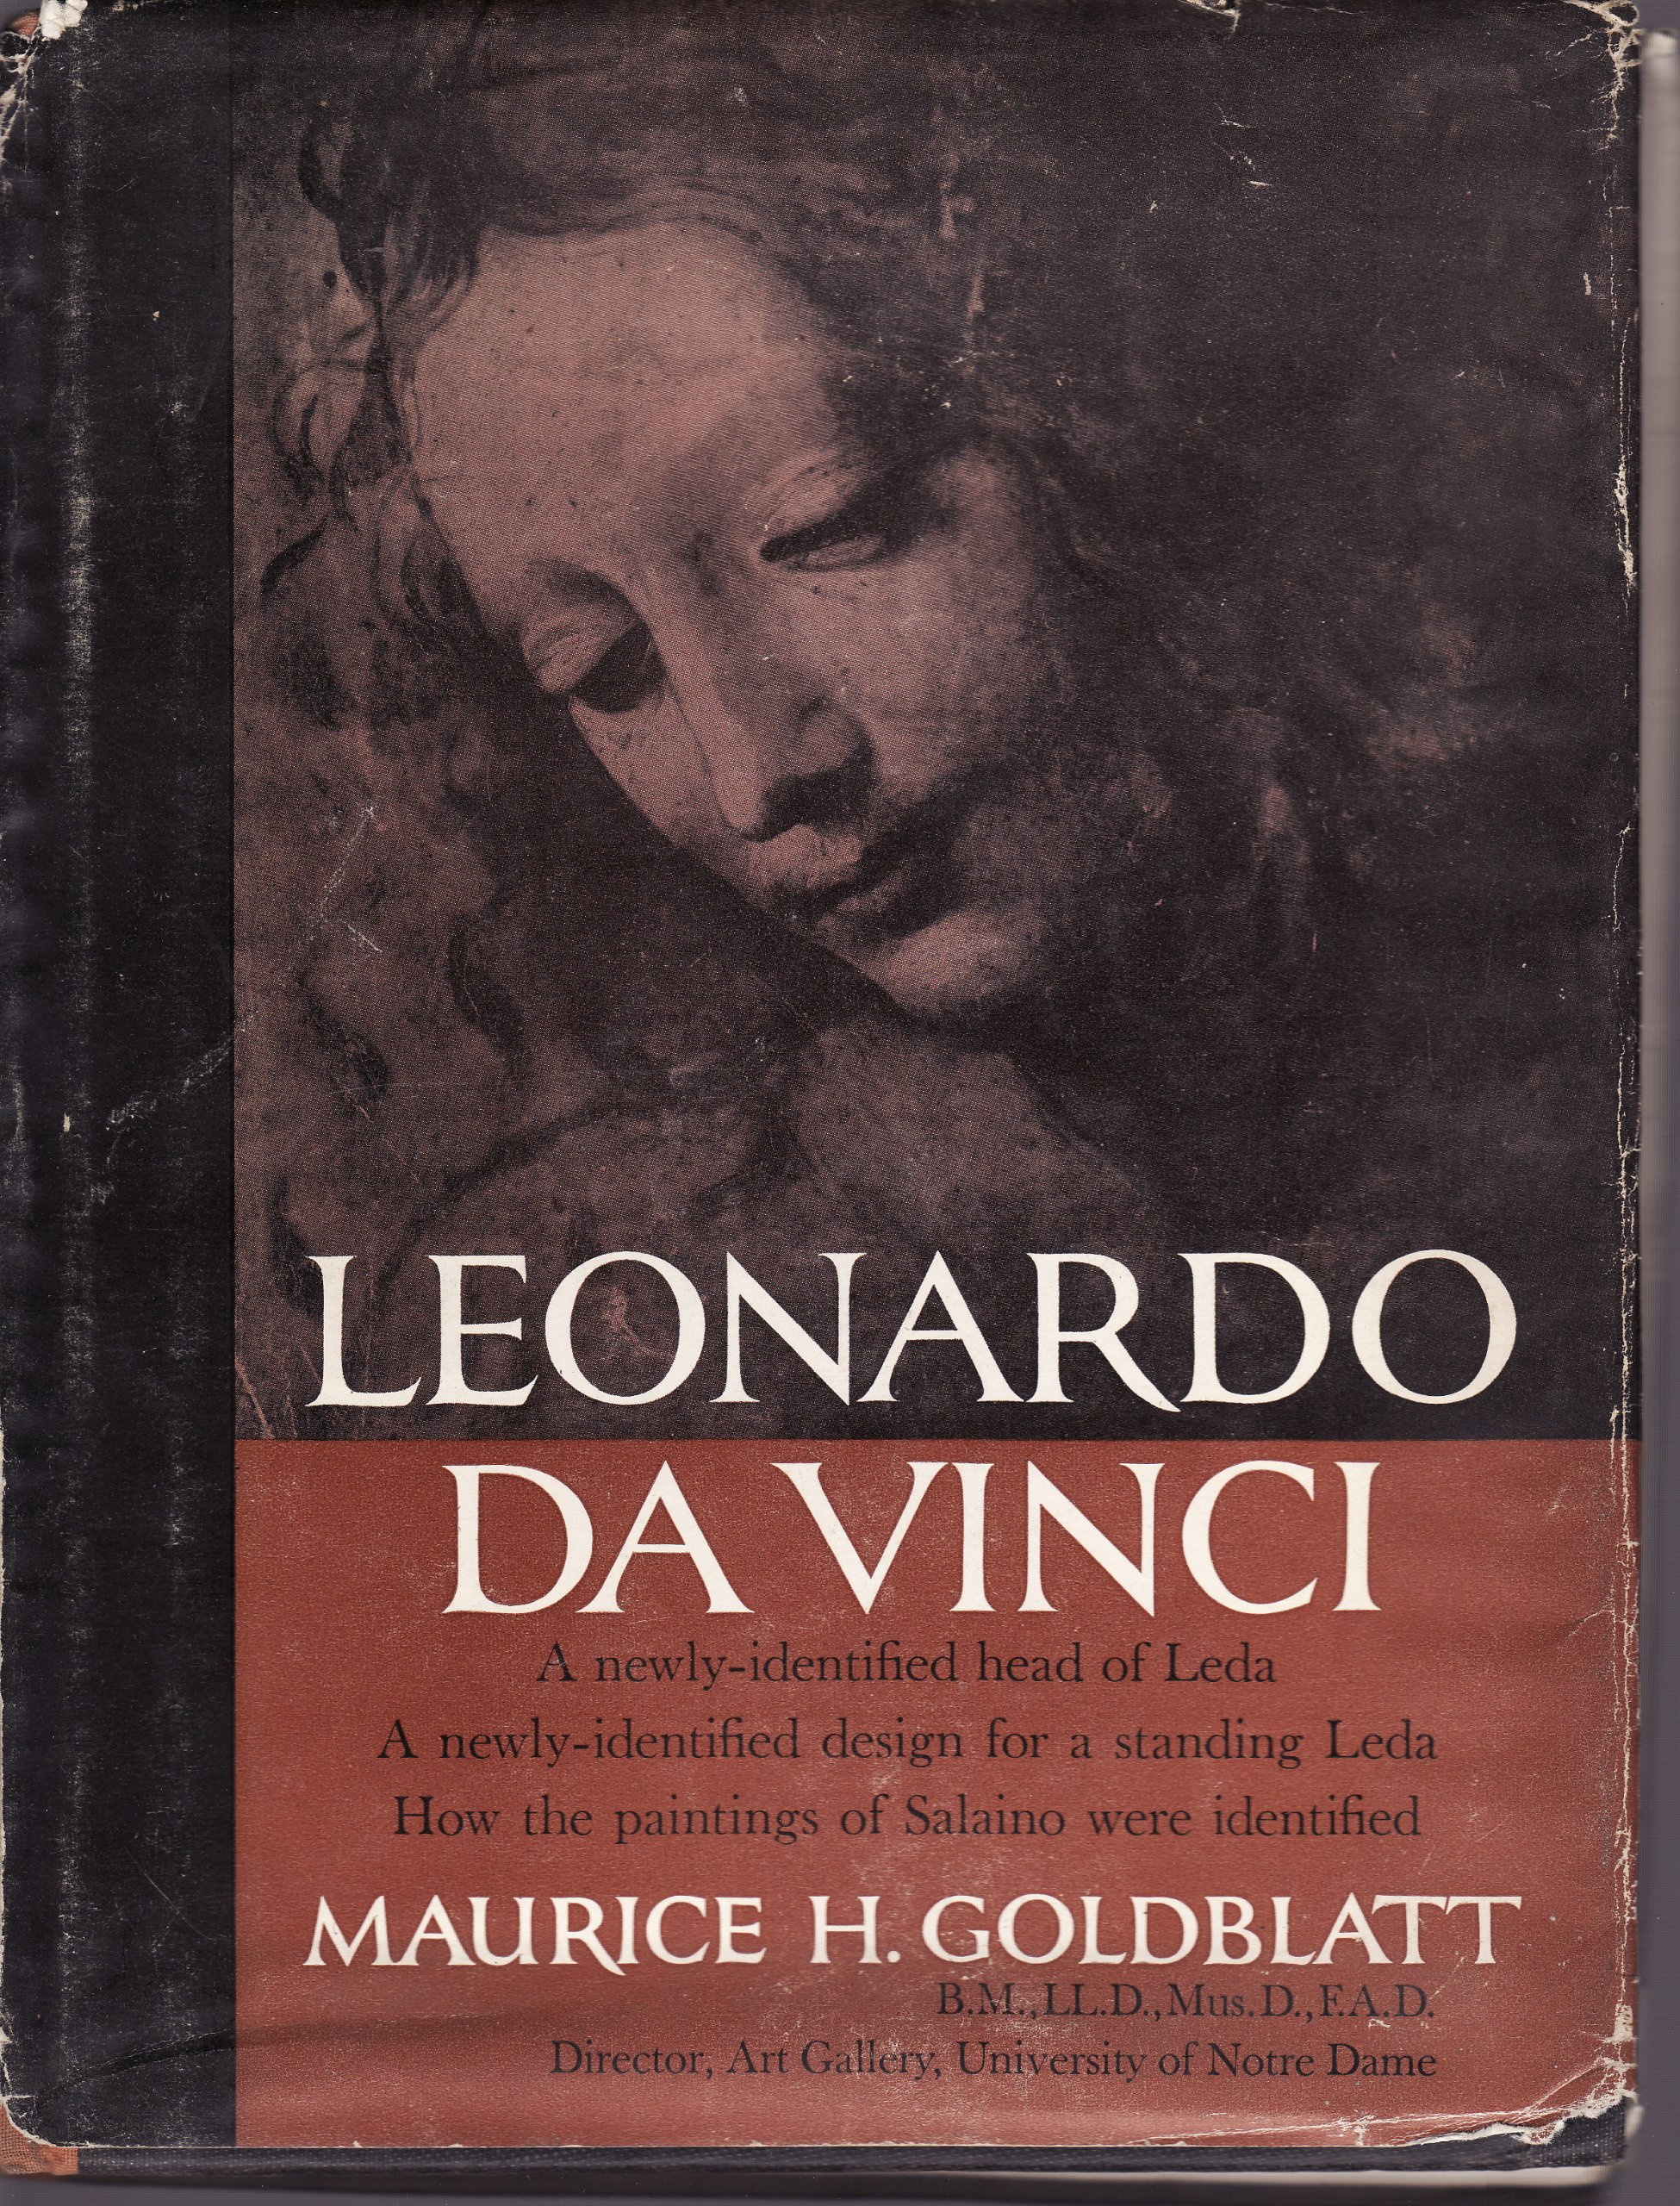 leonardo da vinci a newly identified head of leda